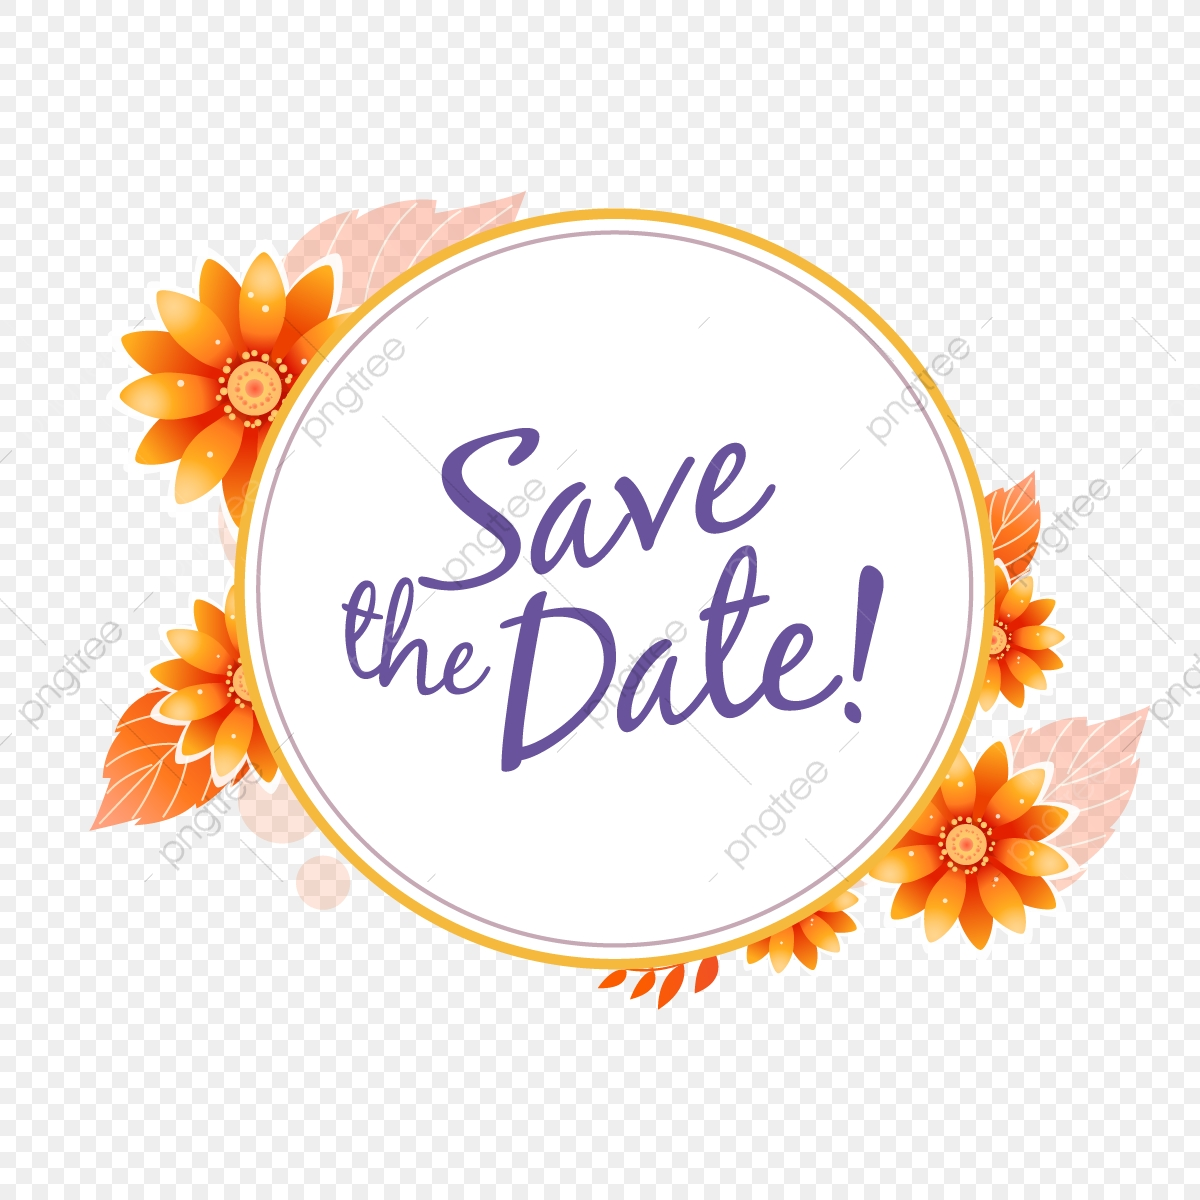 https pngtree com freepng save the date wedding invitation templates 3710253 html